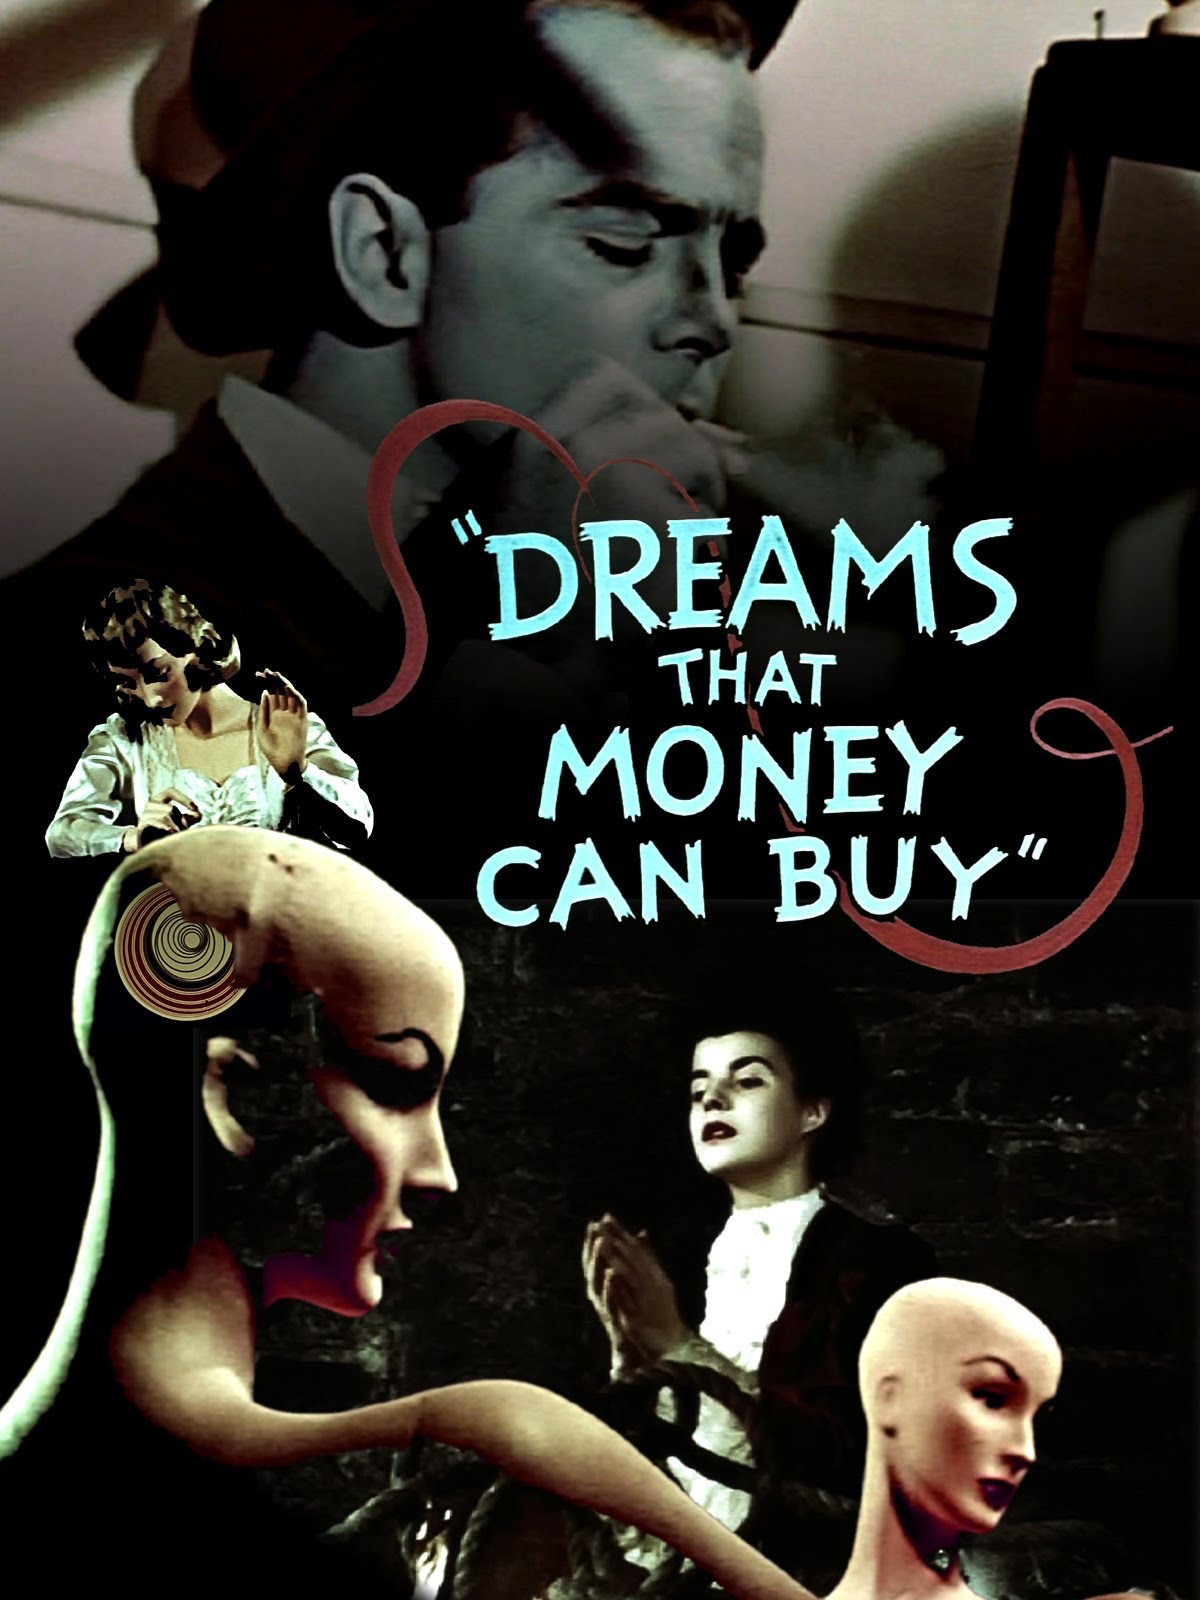 Dreams That Money Can Buy  (1947) is widely considered to be one of the first feature-length abstract art films, featuring Stanley Kubrick's second wife Ruth Sobotka in a minor role